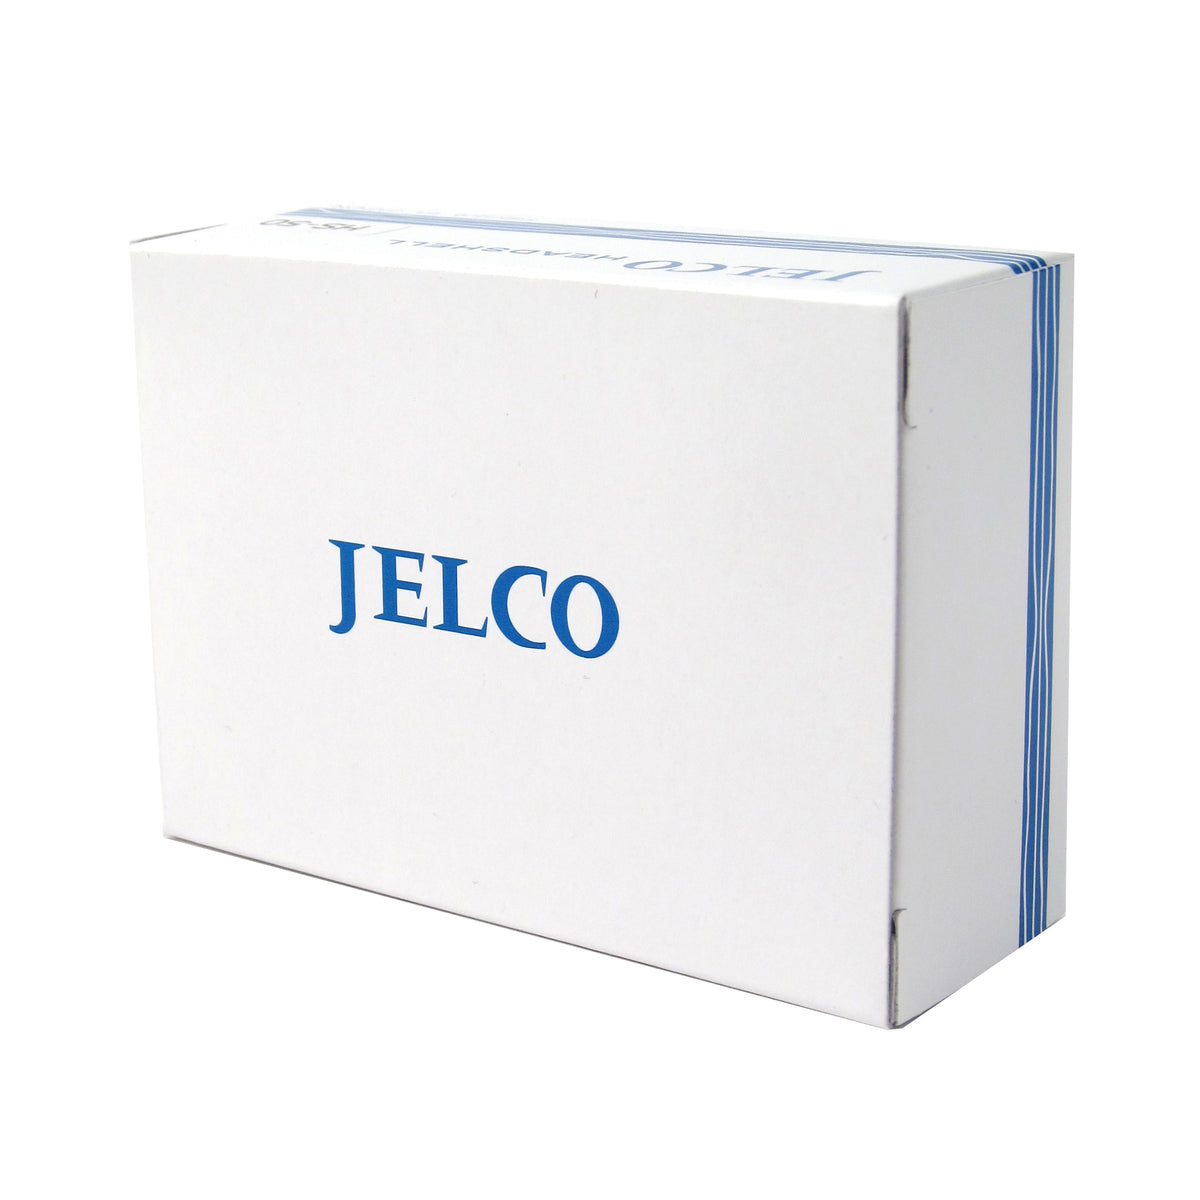 Jelco: HS-50 Aluminum Alloy Turntable Headshell (Made In Japan)